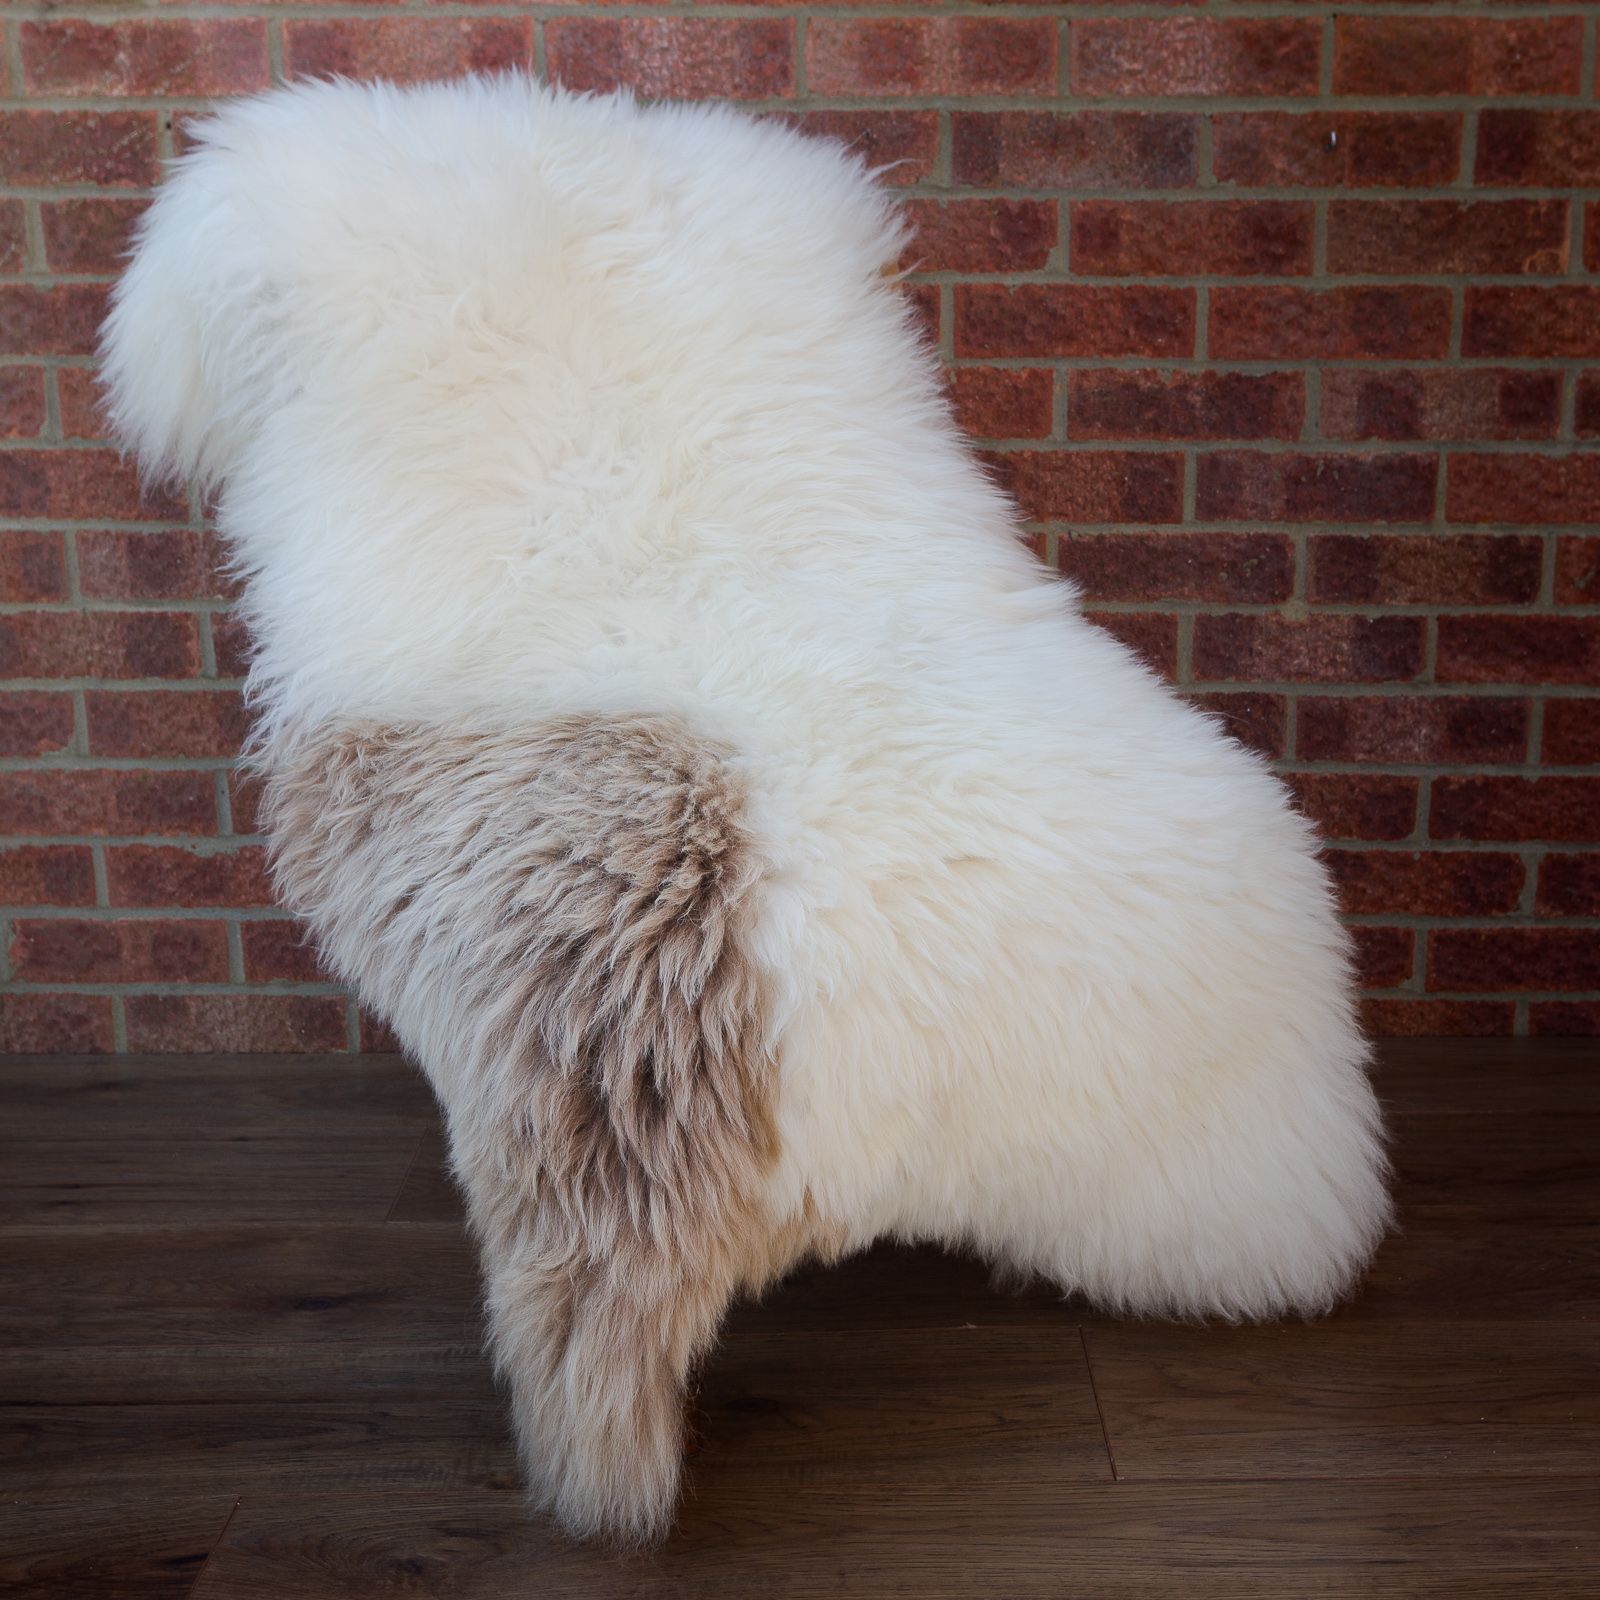 Extra large, cream with brown patch sheepskin rug